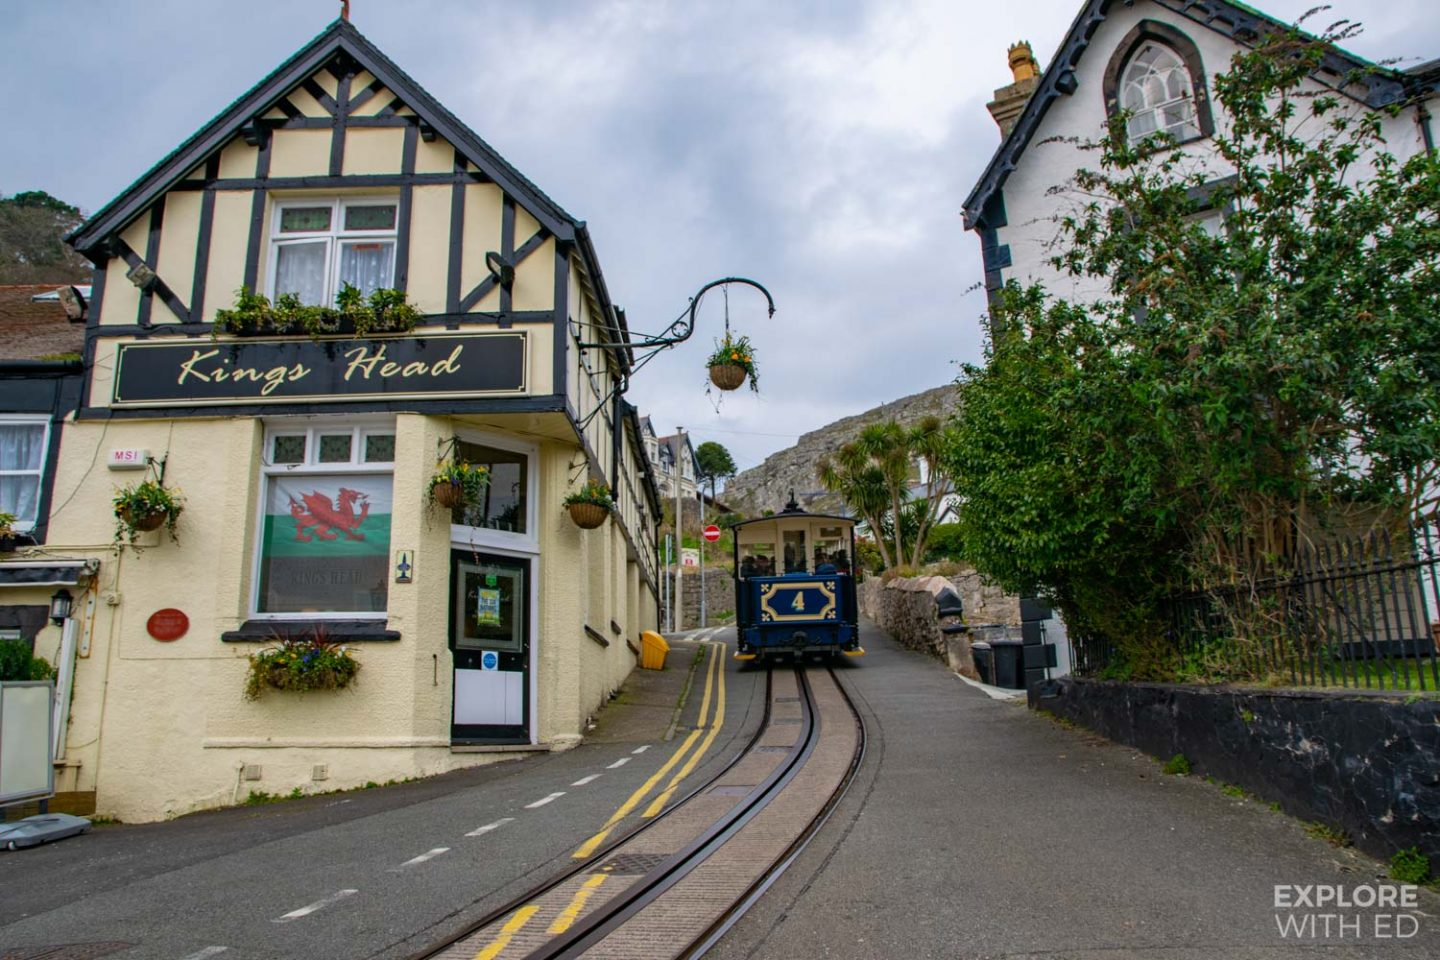 The Great Orme Tramway and Kings Head pub in Llandudno, Wales